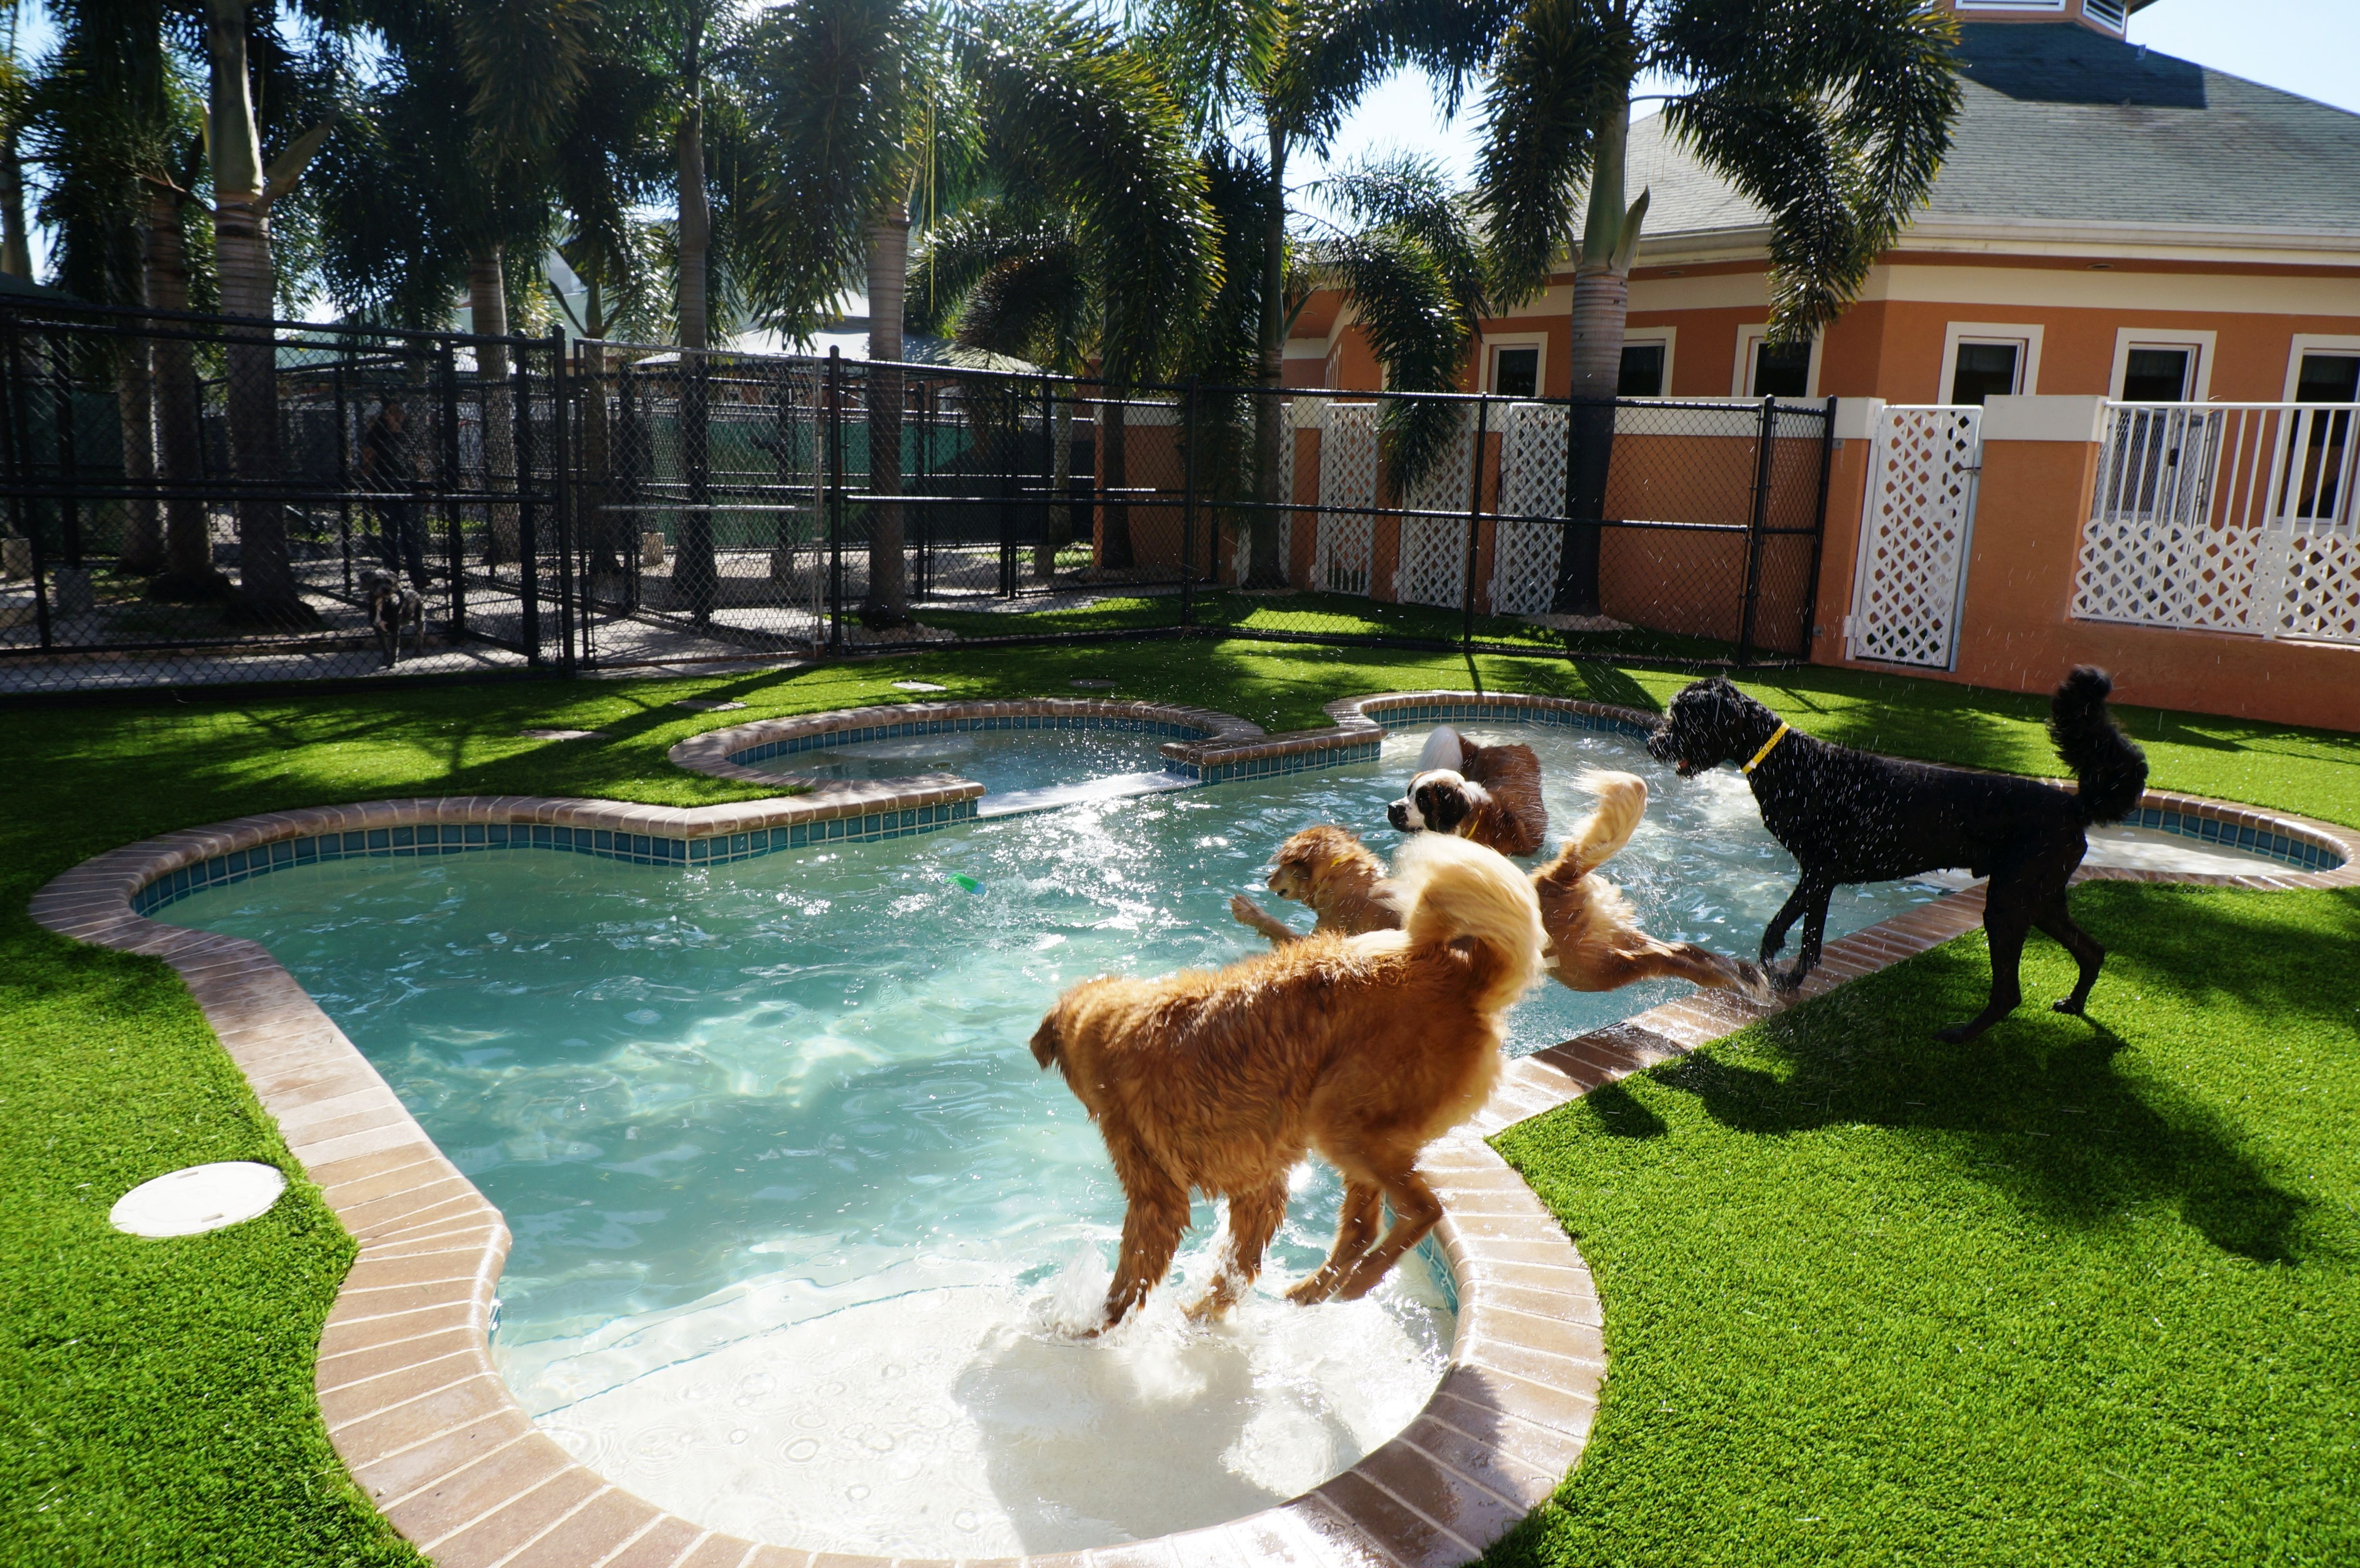 Artificial Dog Grass Pets Dog Psychology Dog Pool Dog Kennel Outdoor